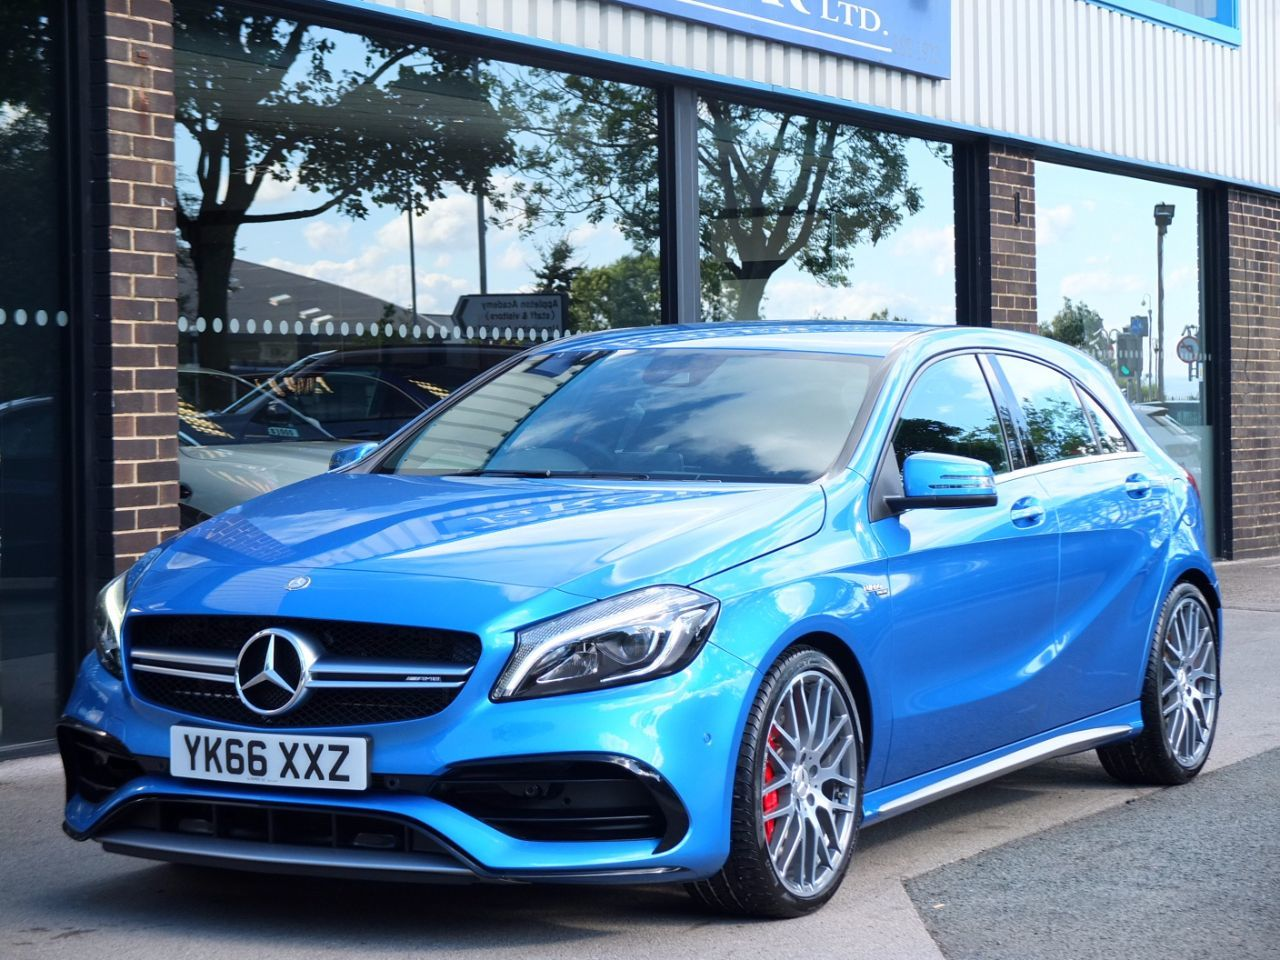 Mercedes-Benz A Class 2.0 AMG A45 4MATIC Speedshift DCT Auto 381bhp Hatchback Petrol South Sea Blue MetallicMercedes-Benz A Class 2.0 AMG A45 4MATIC Speedshift DCT Auto 381bhp Hatchback Petrol South Sea Blue Metallic at fa Roper Ltd Bradford